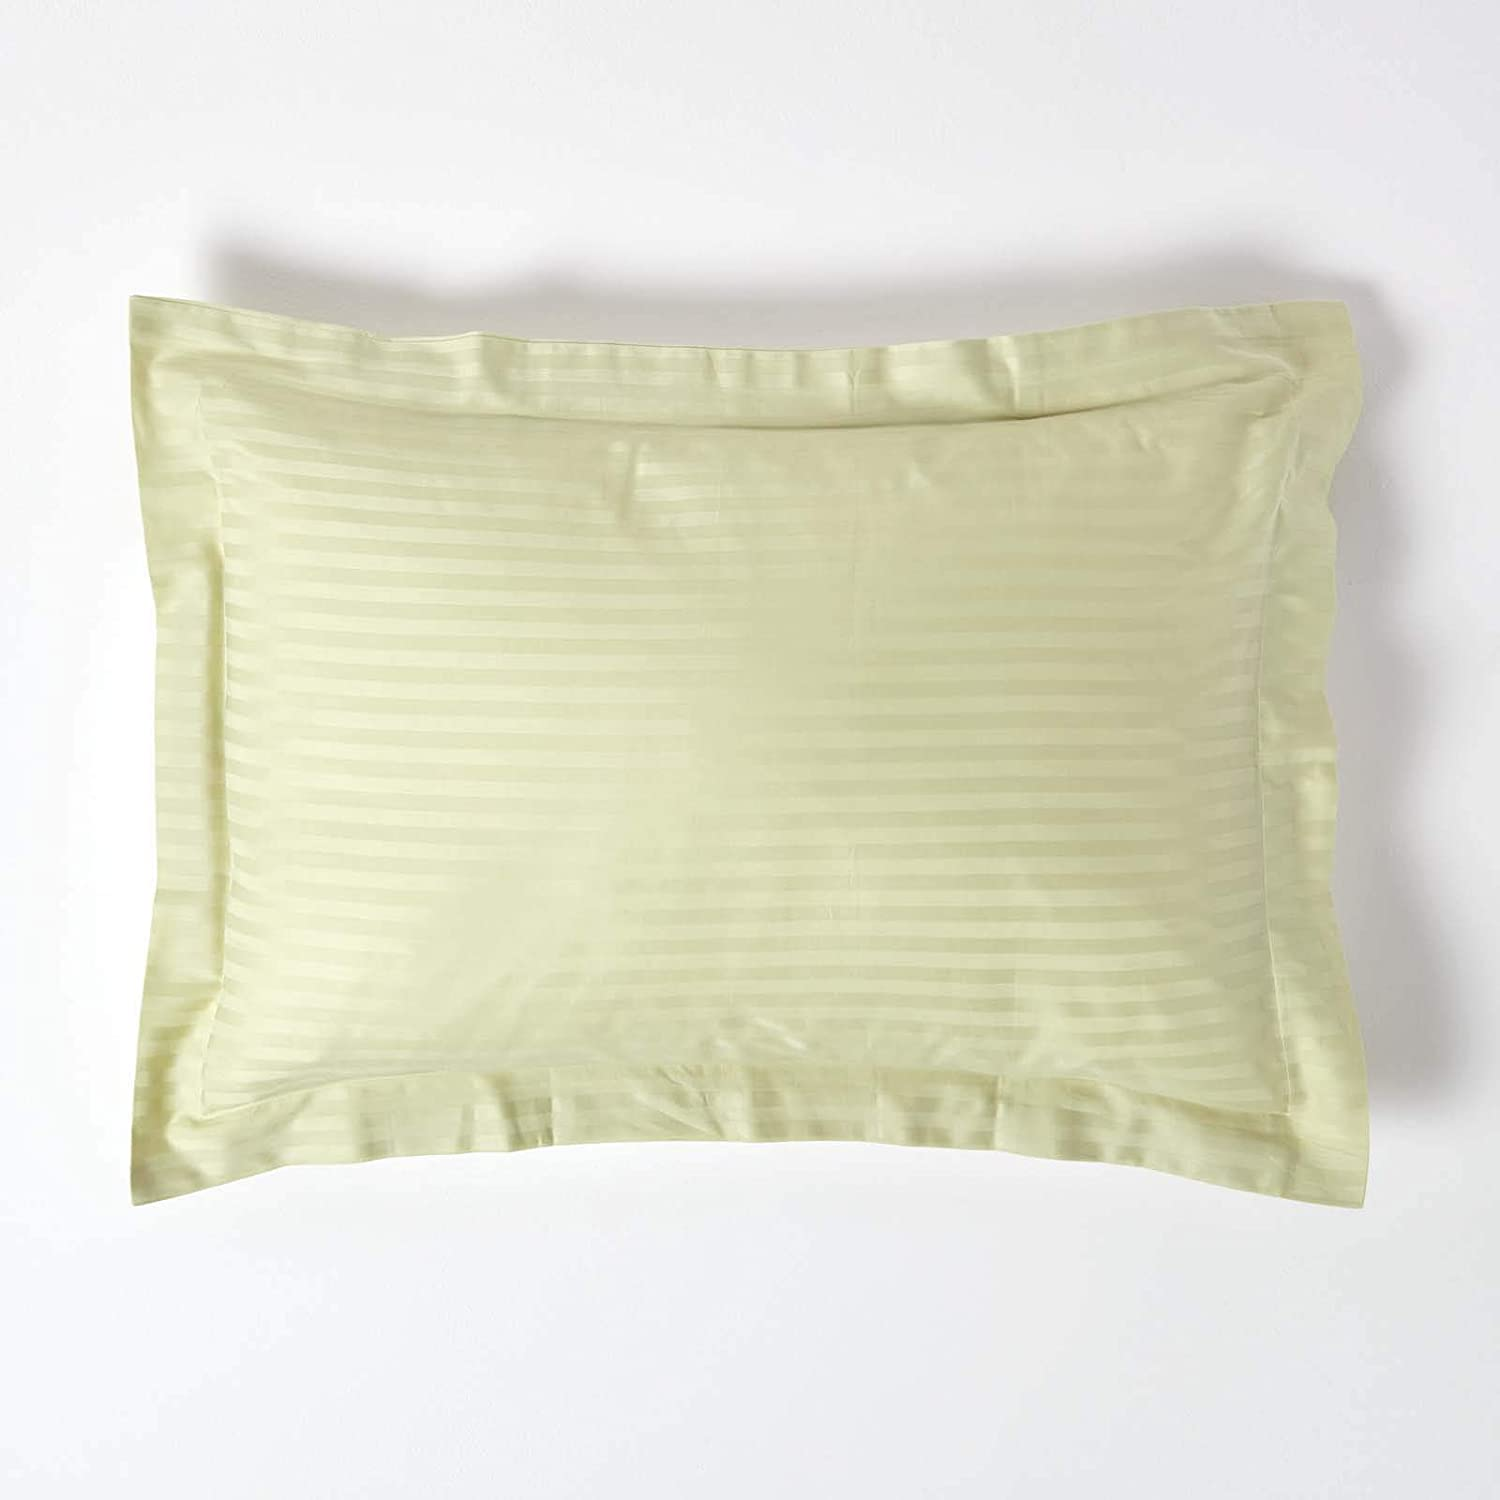 Oxford High Quality 100/% Natural Cotton Linen Mix Soft Fabric Material